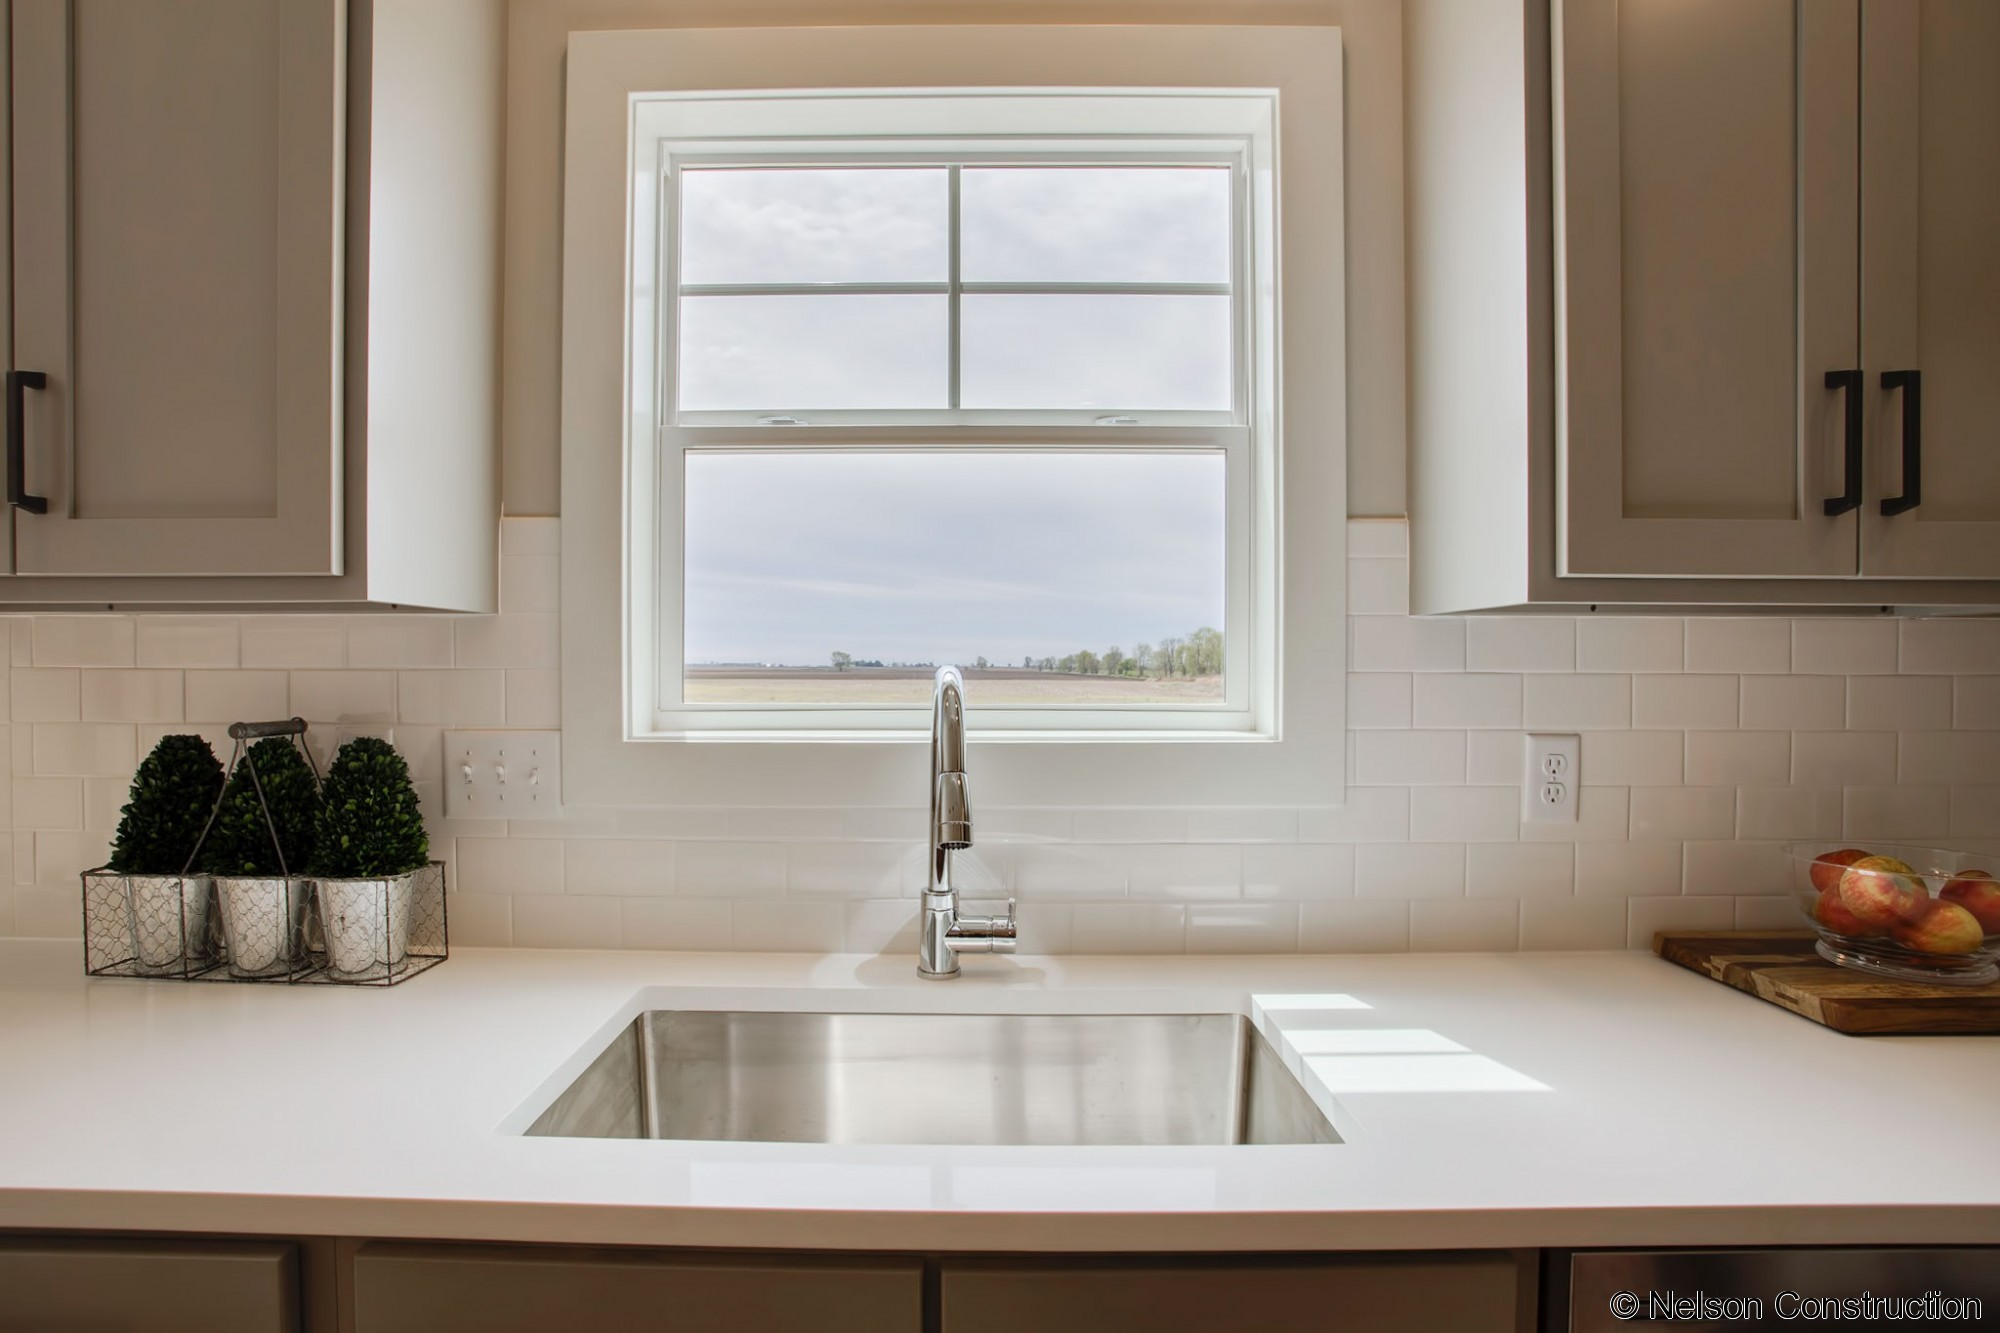 The kitchen sink of this new home by Nelson Builders overlooks the large back yard.